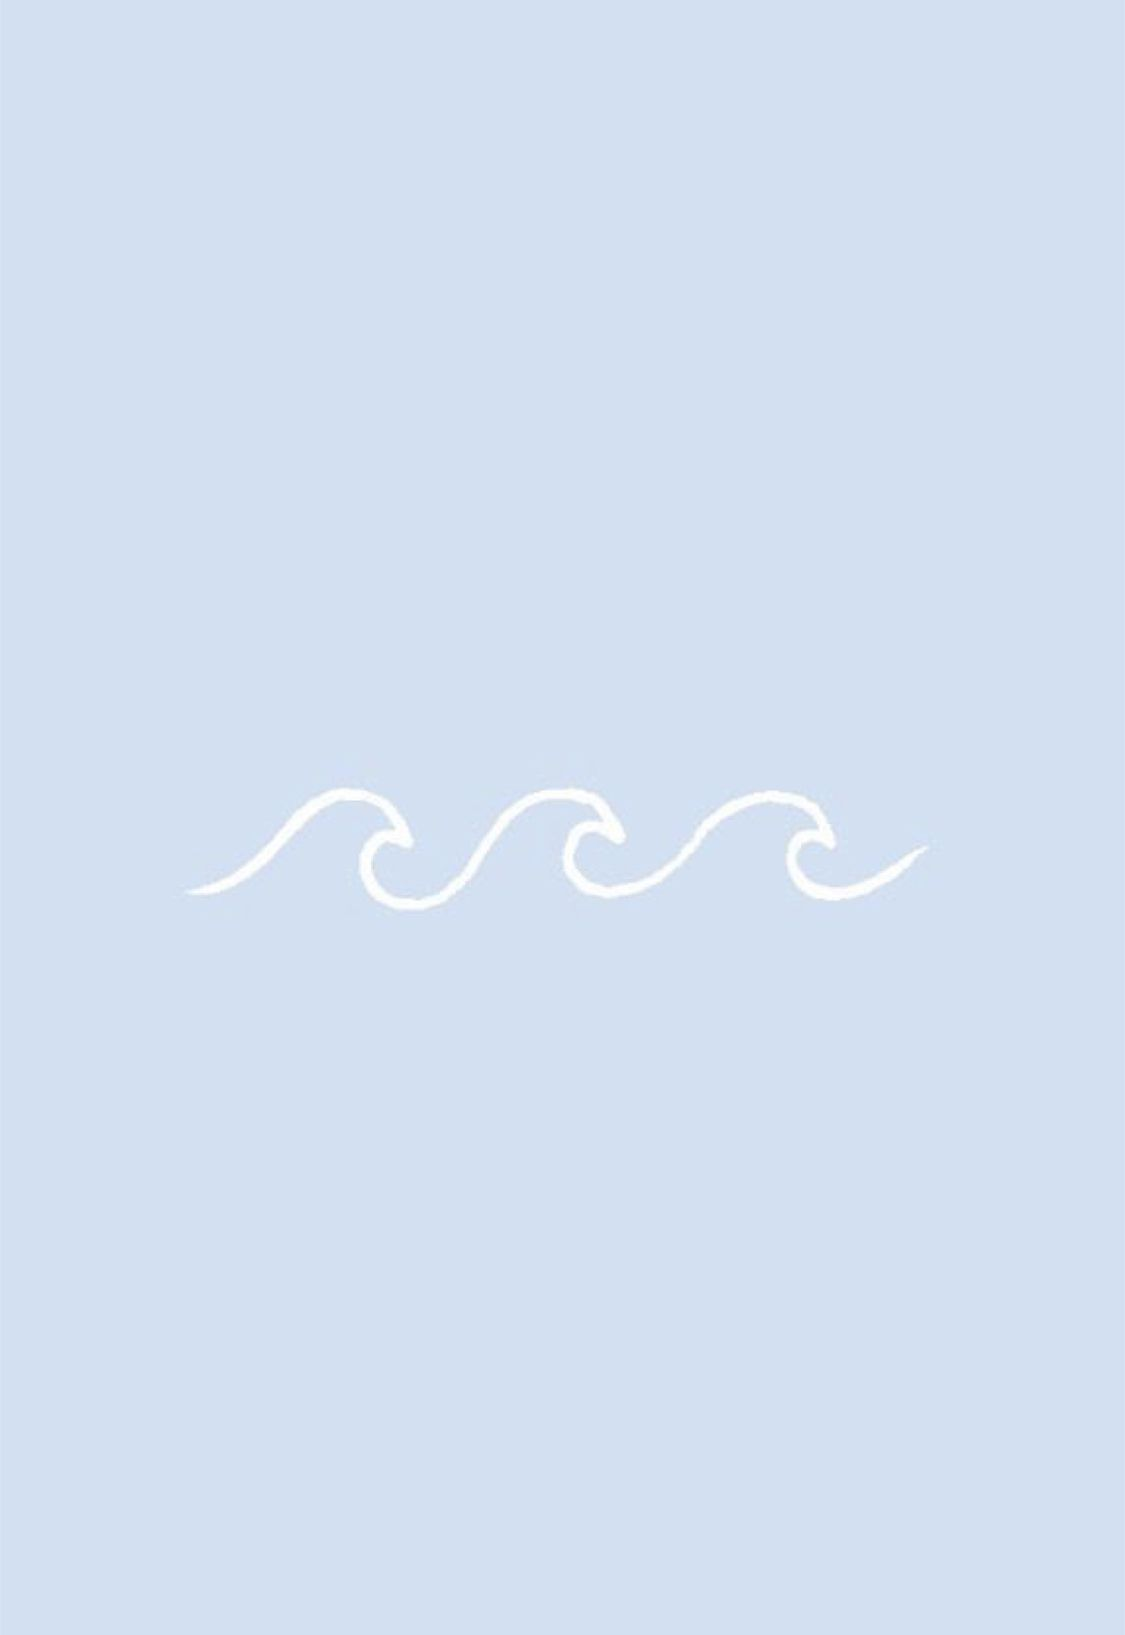 Cute blue VSCO wave background for iPhone Iphone